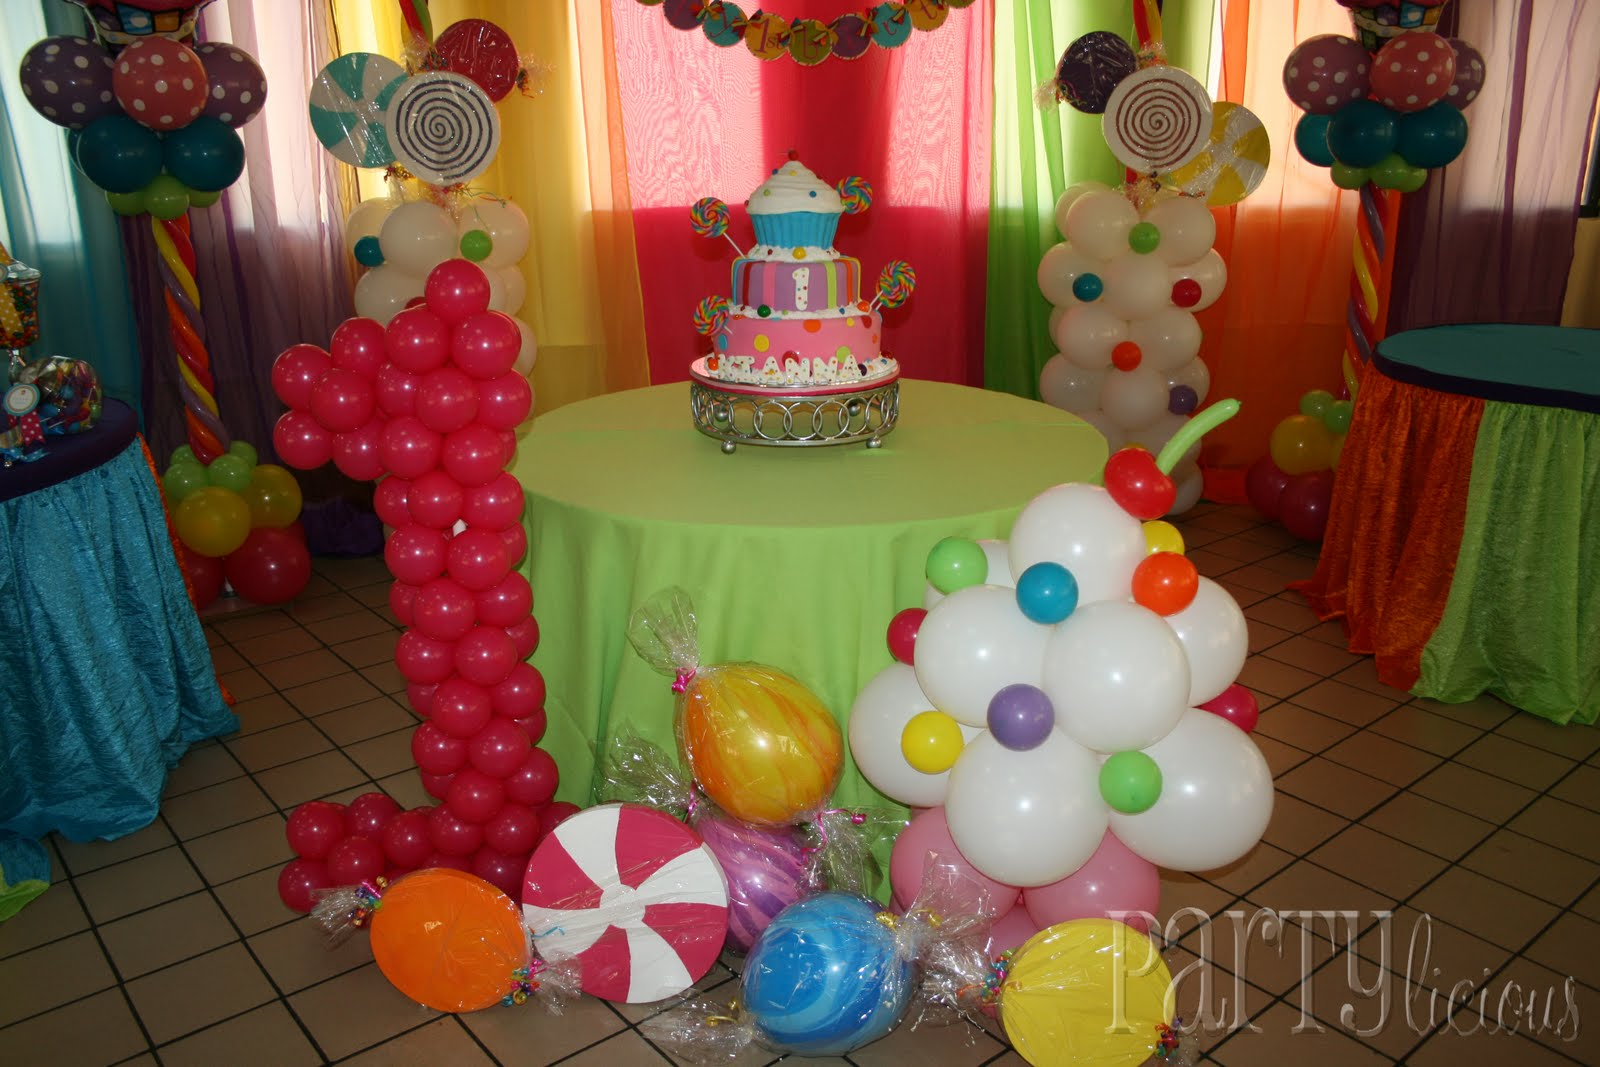 Partylicious events pr sweet 1st birthday candy cupcakes for Balloon decoration for first birthday